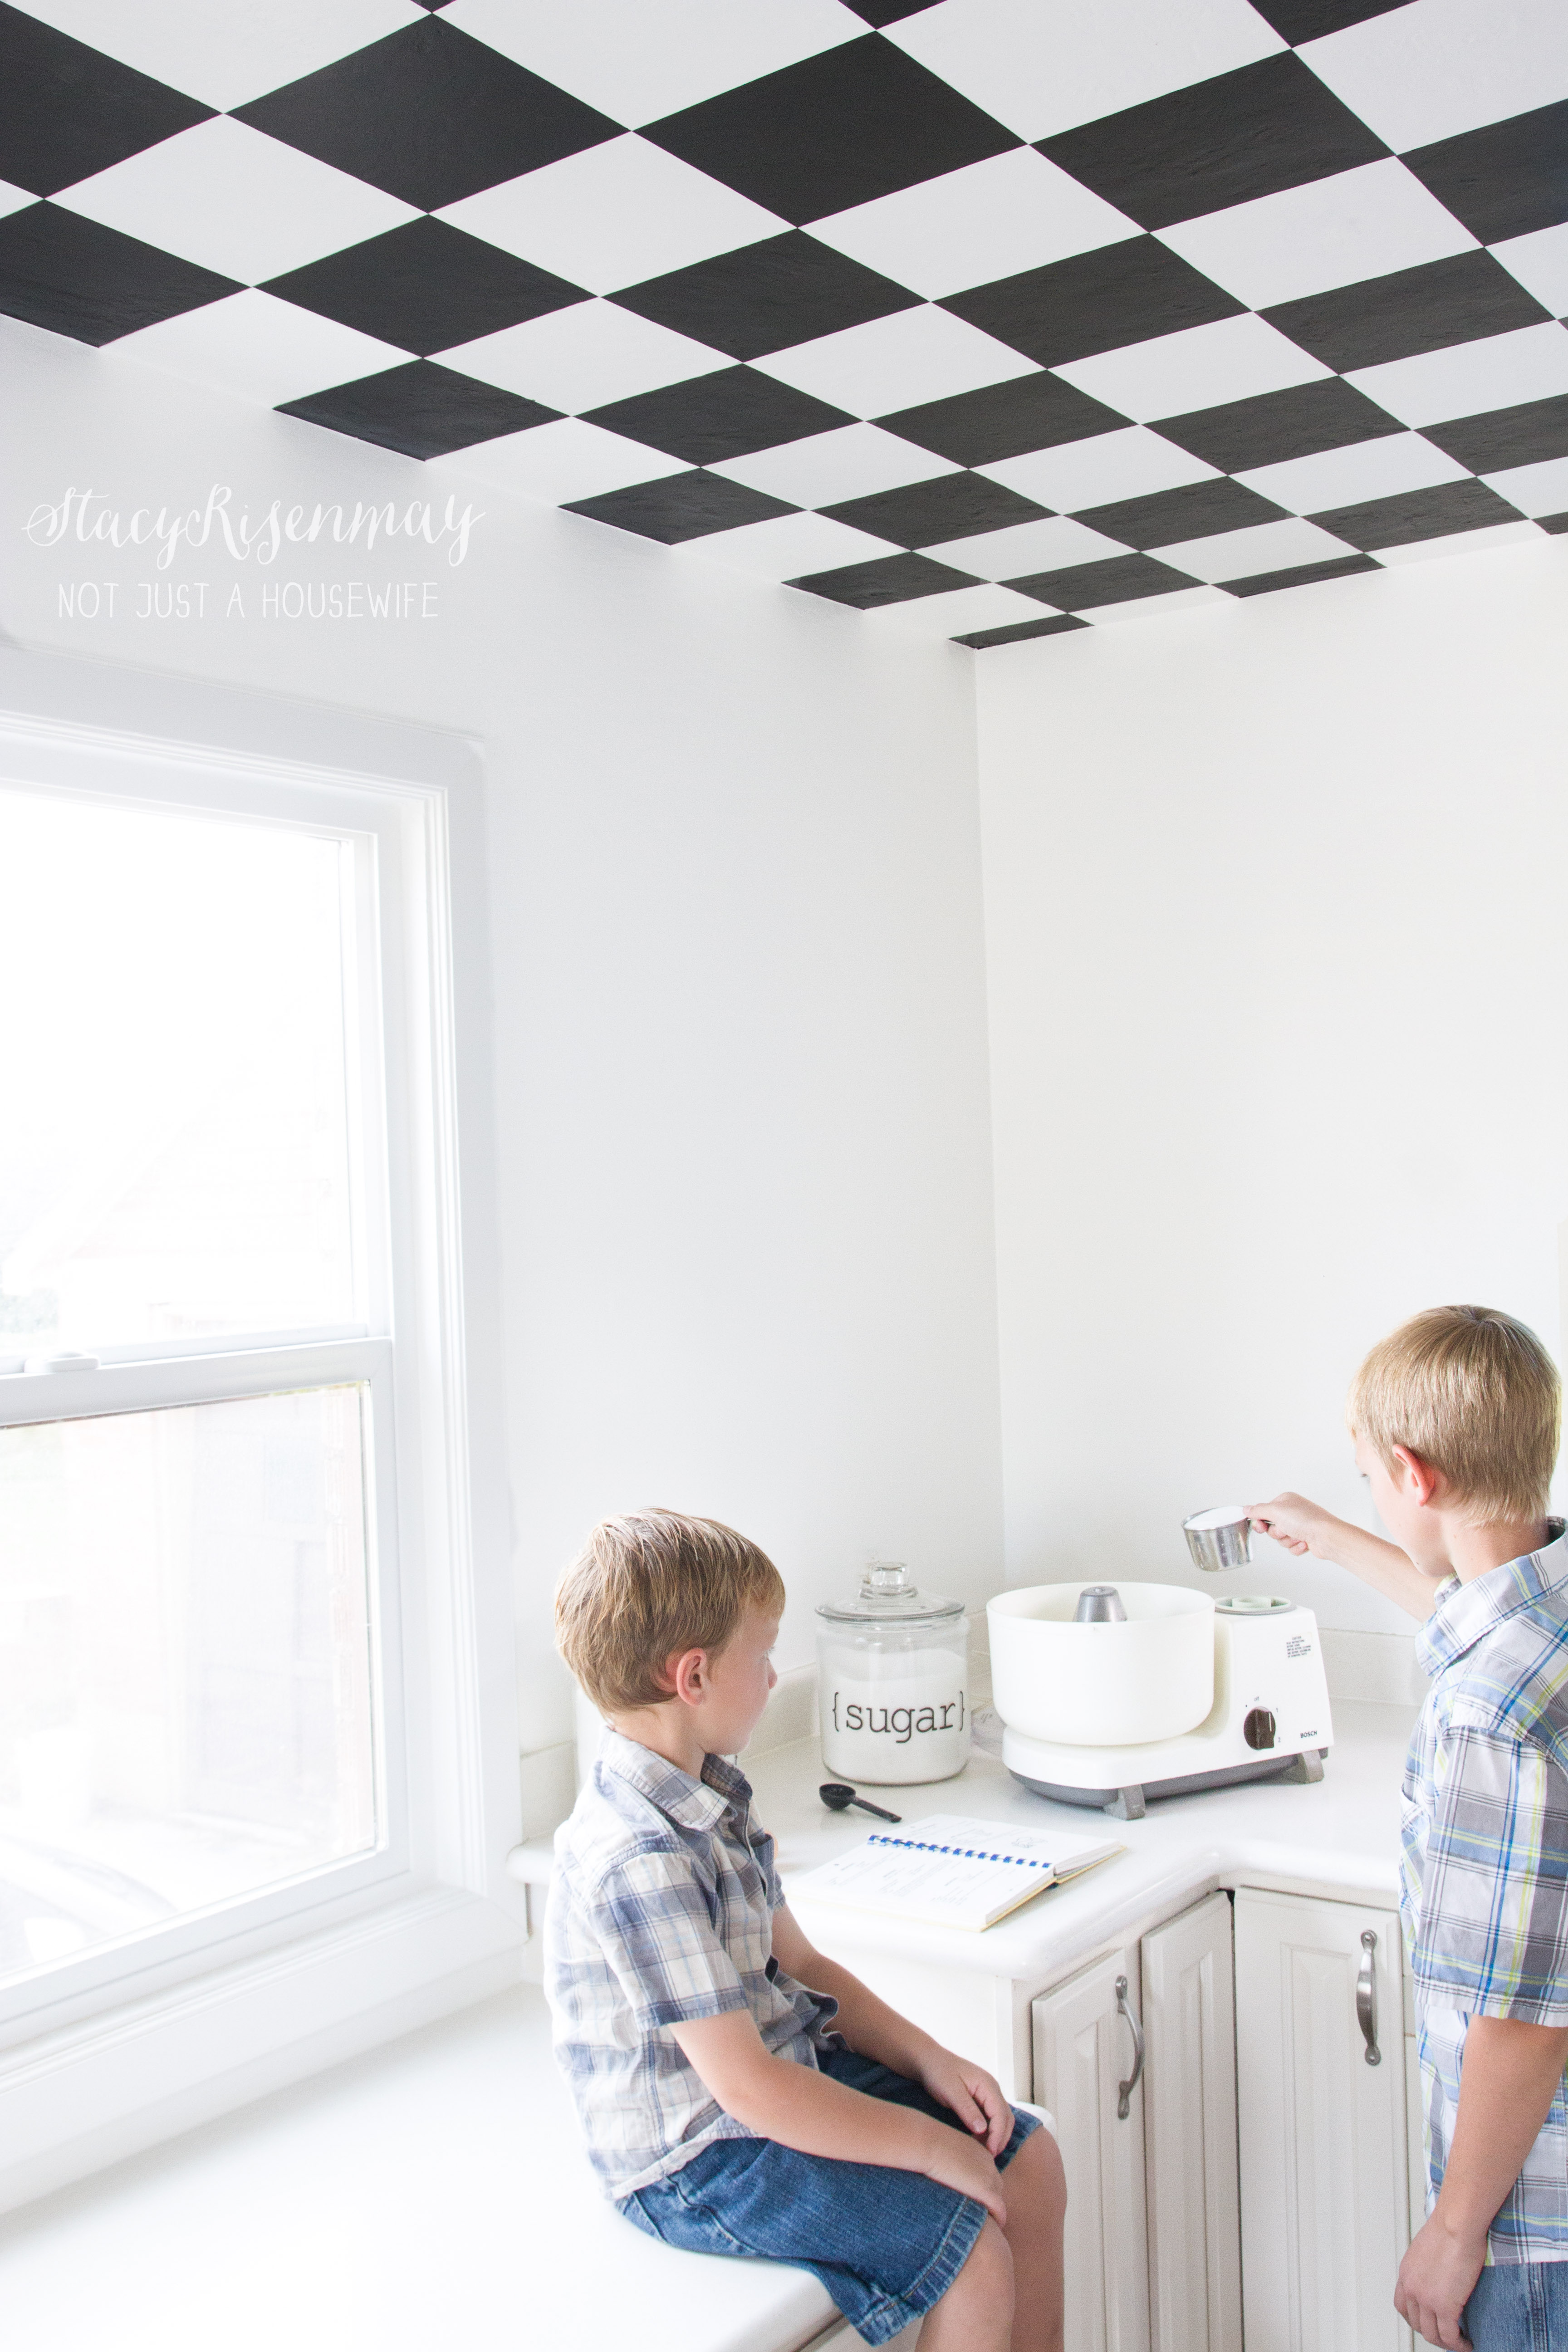 Checkered Ceiling In Kitchen {Tutorial} - Stacy Risenmay